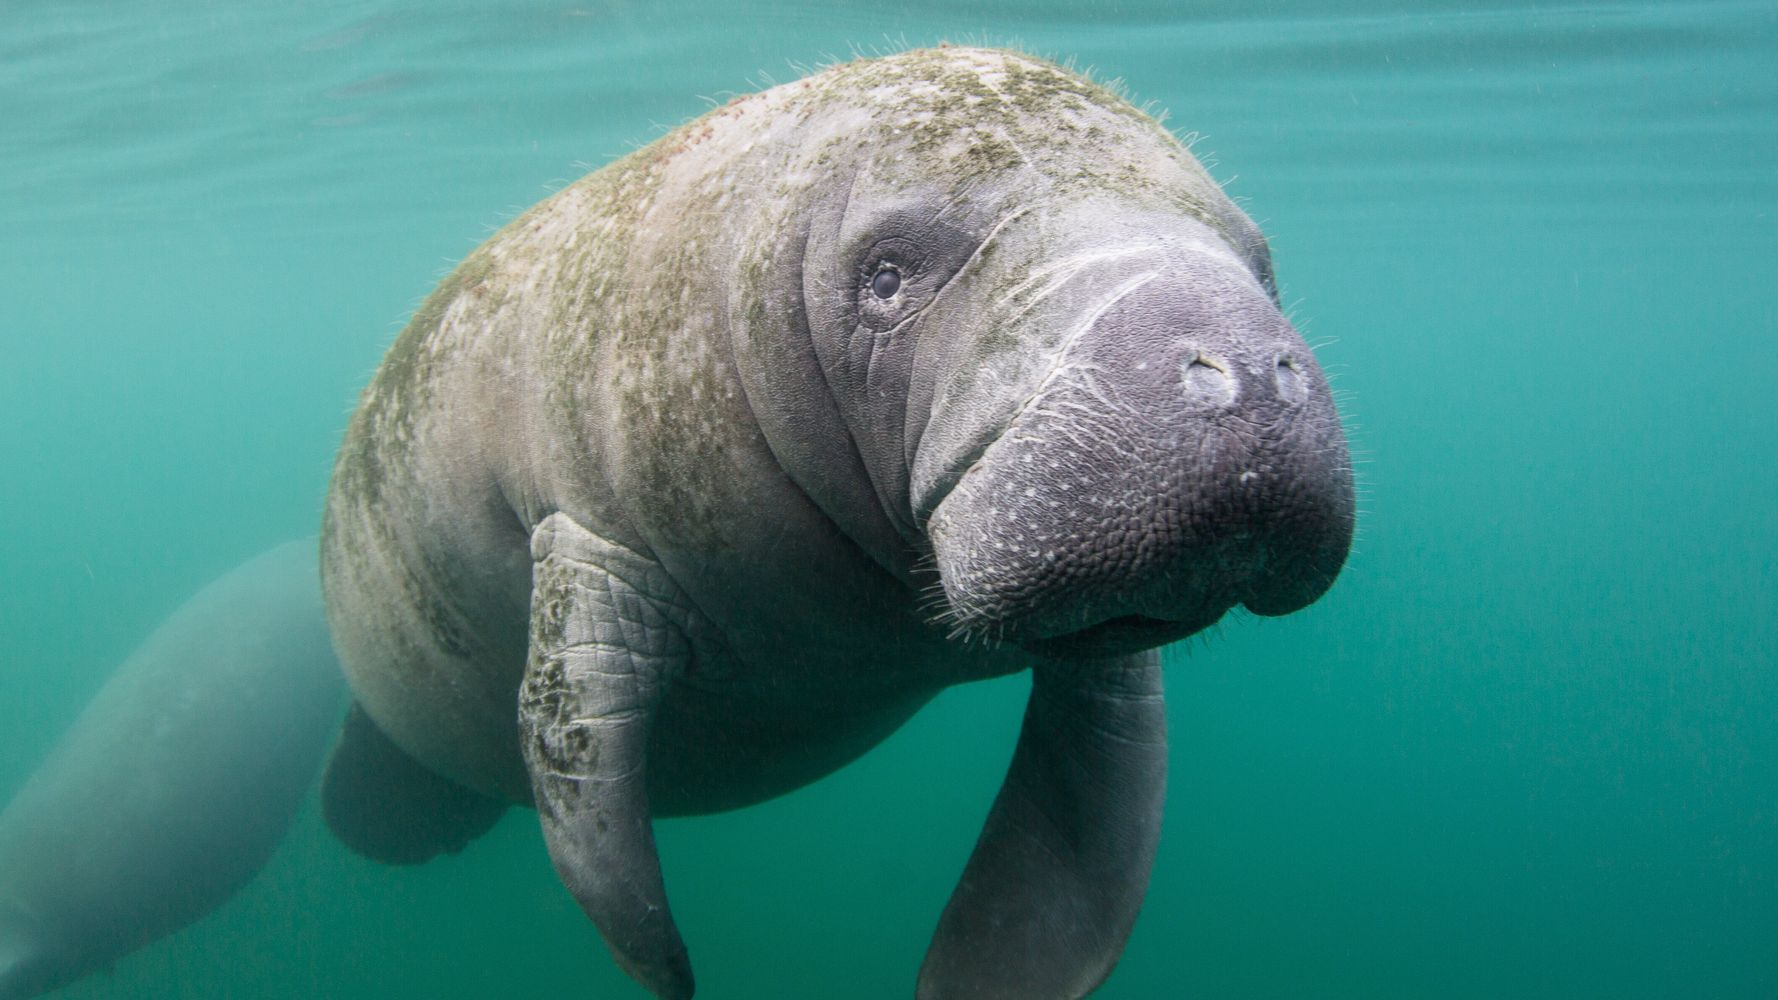 Federal Officials Seeking Person Who Scraped 'Trump' Into Manatee's Back